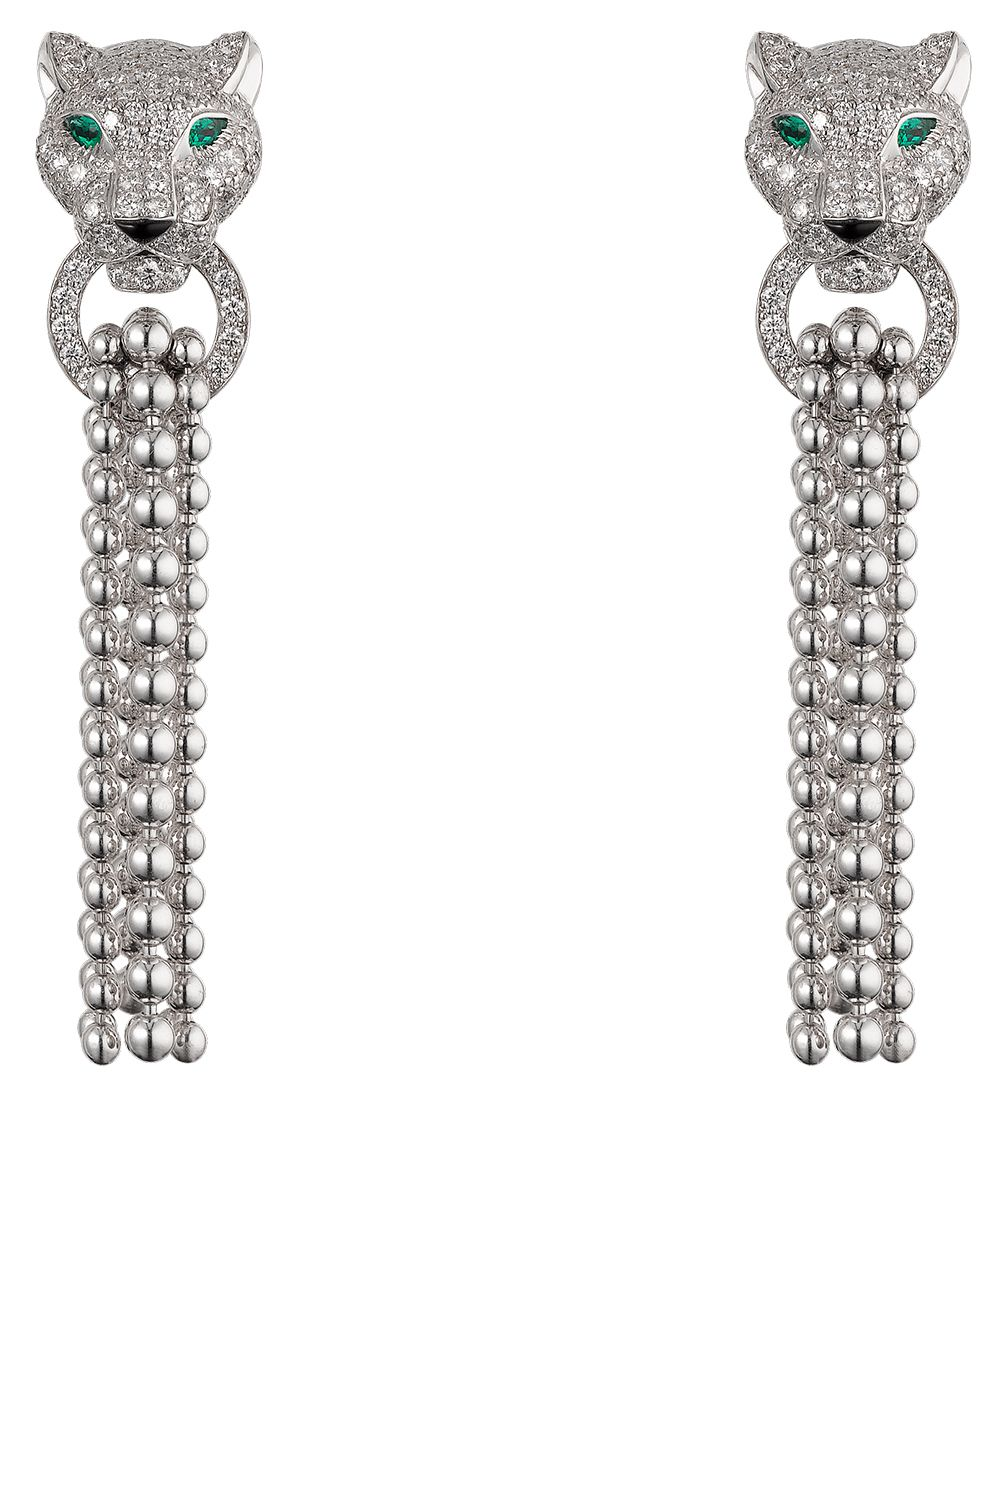 Cartier Panthère De Earrings 18k White Gold Emeralds Onyx Diamonds 49 800 Available At Boutiques Nationwide Harpersbazaar